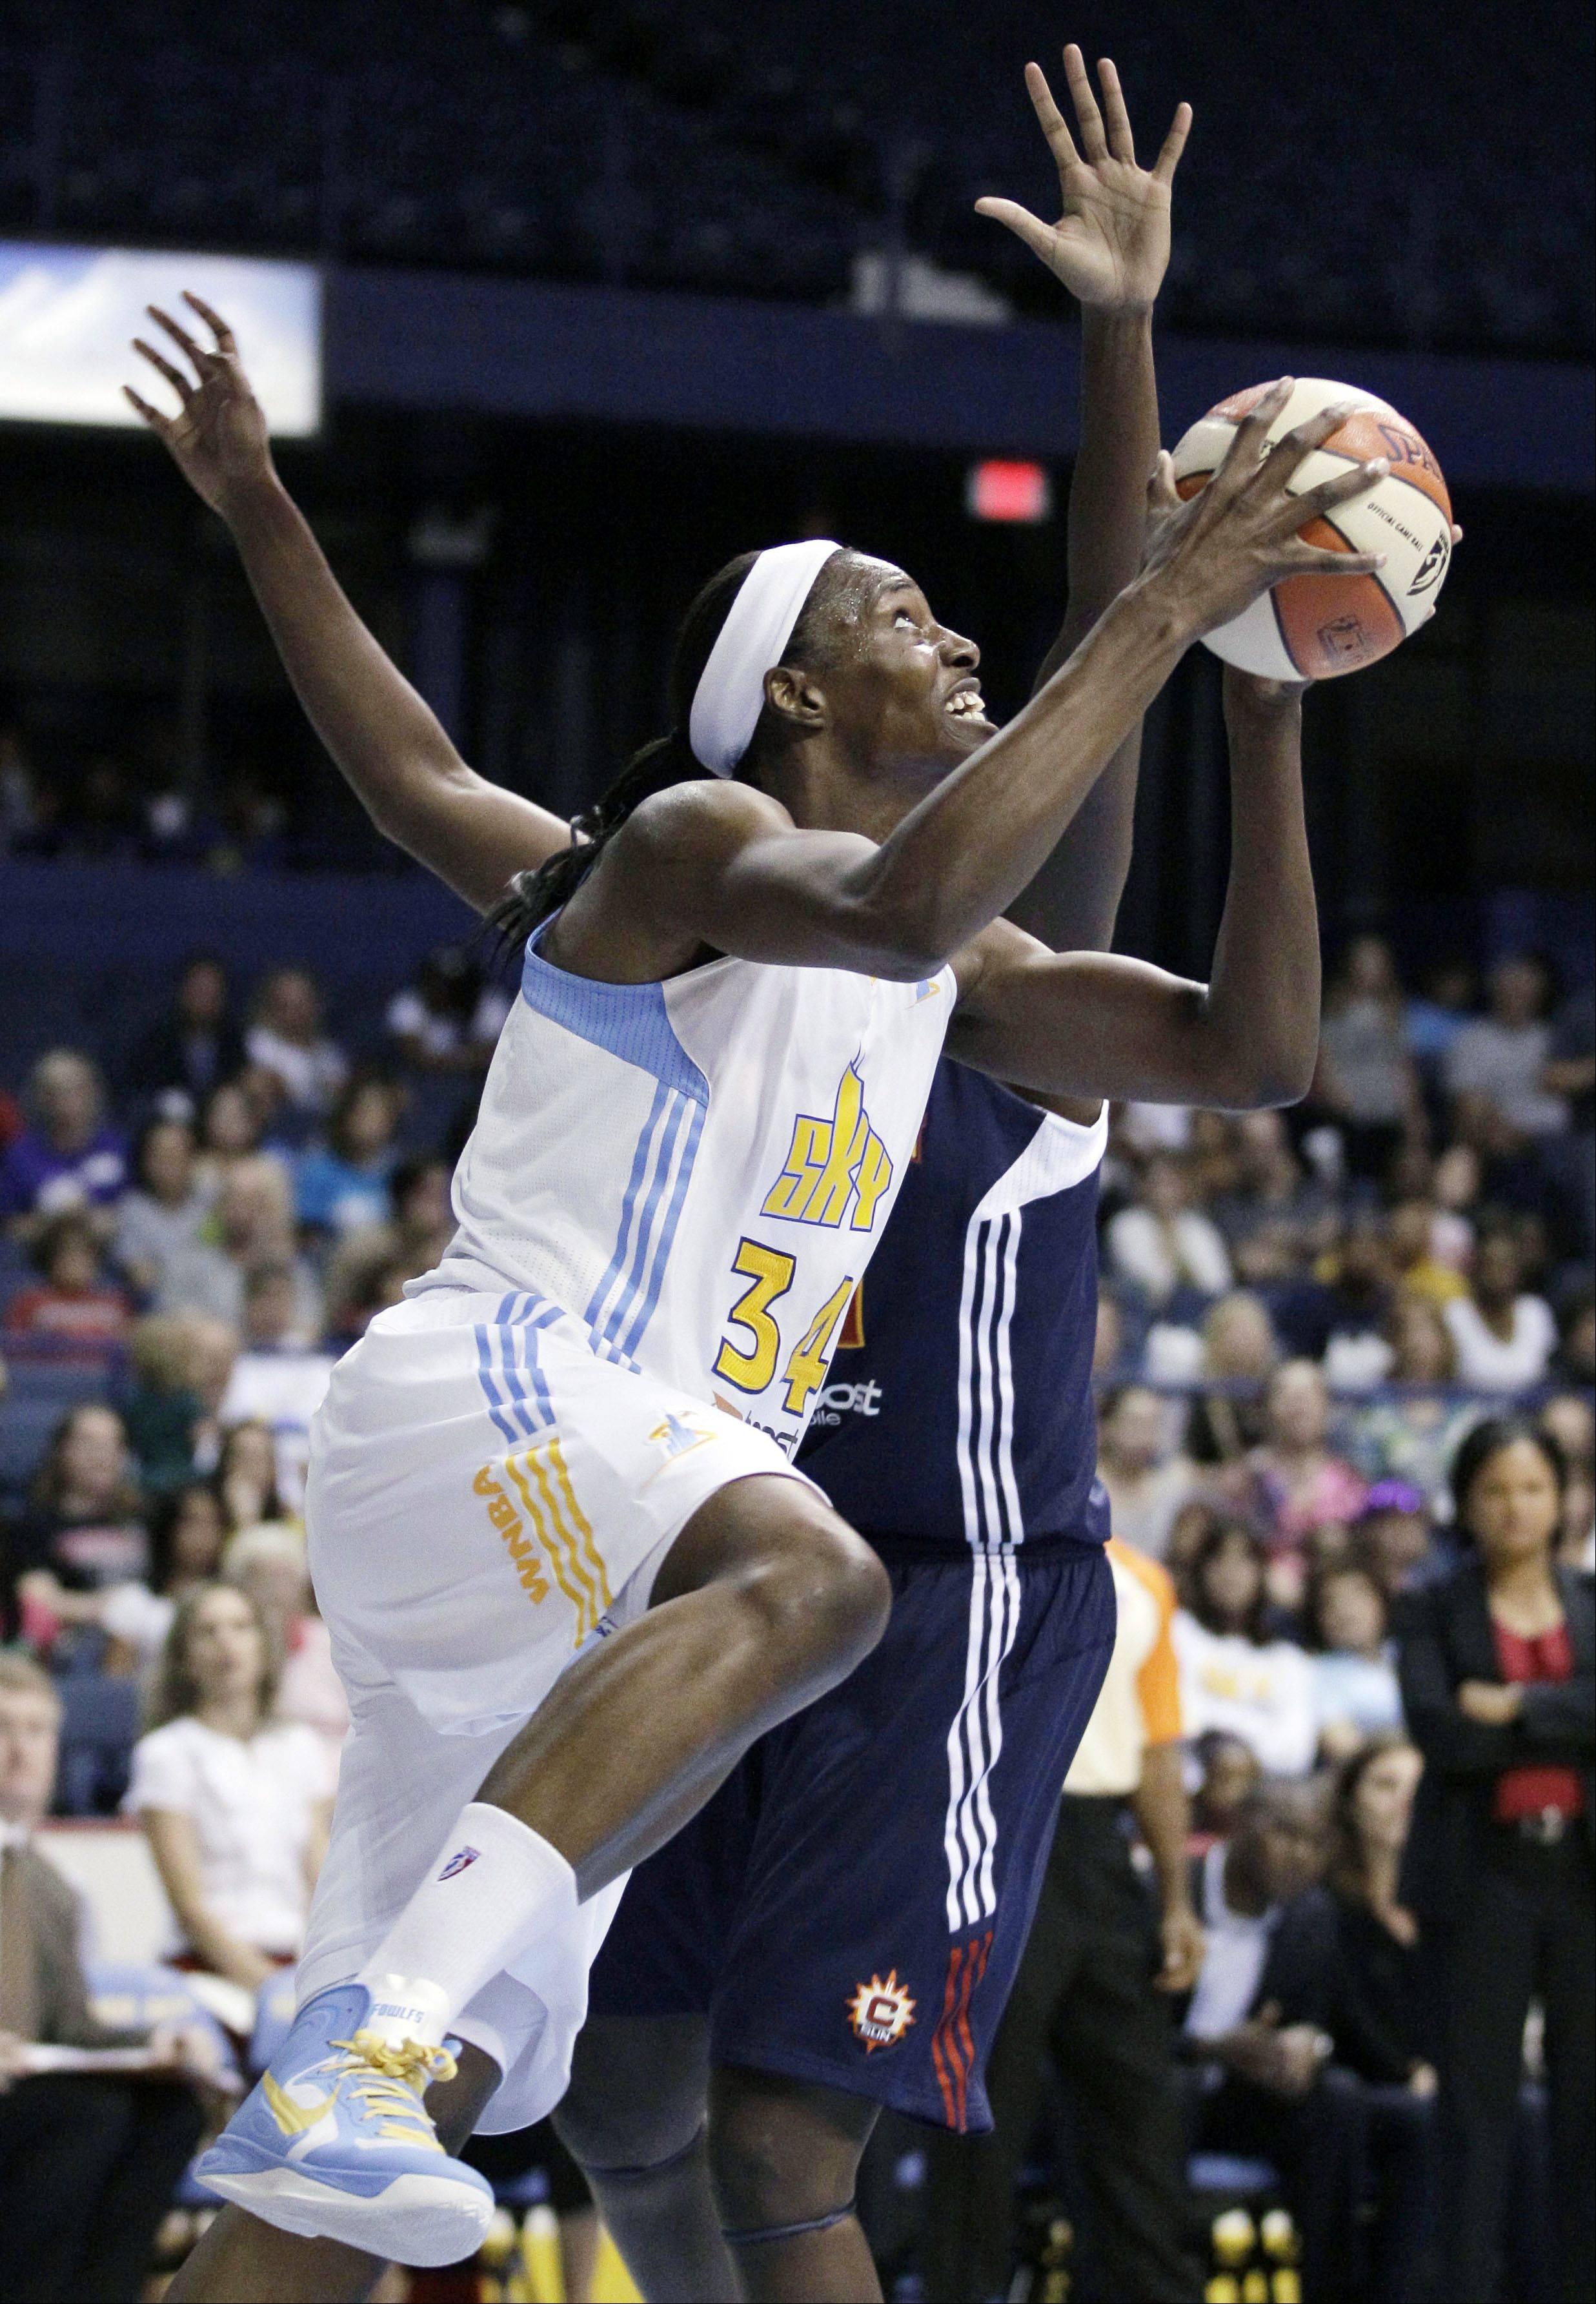 Chicago Sky center Sylvia Fowles (34) drove to the basket while Connecticut Sun center Tina Charles (31) guarded her during a WNBA basketball game last season. The Chicago Sky returns to the Allstate Arena in Rosemont this weekend.